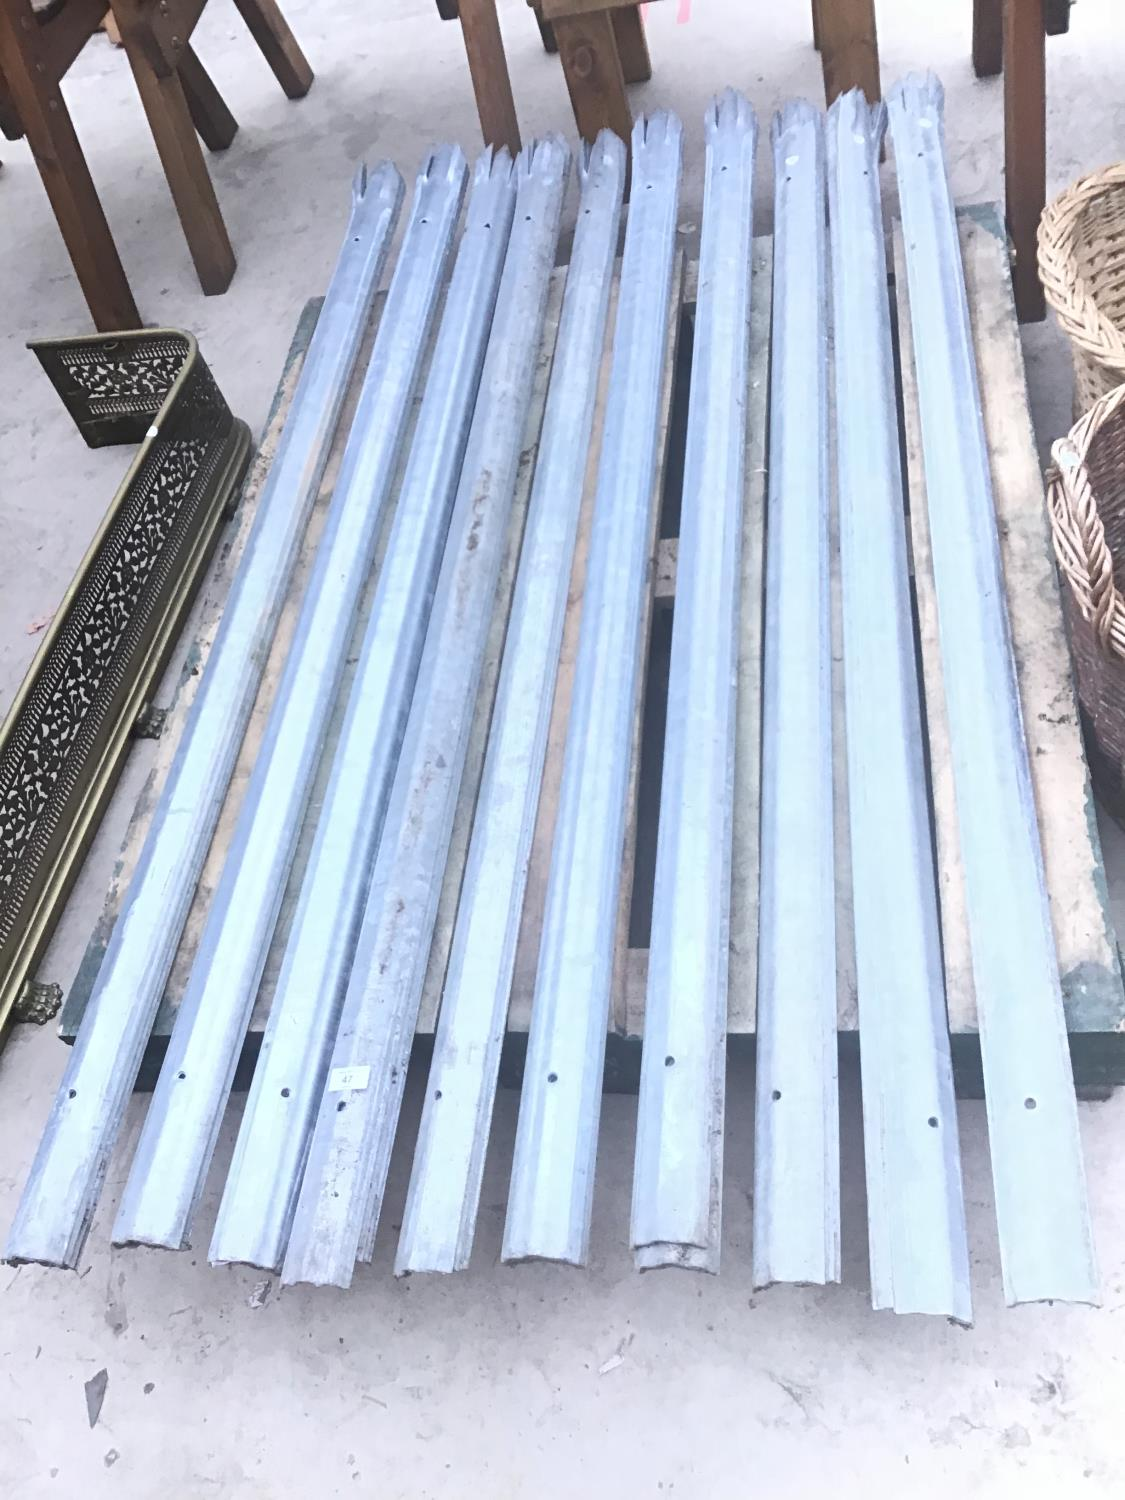 FORTY METAL SECURITY FENCE STAKES